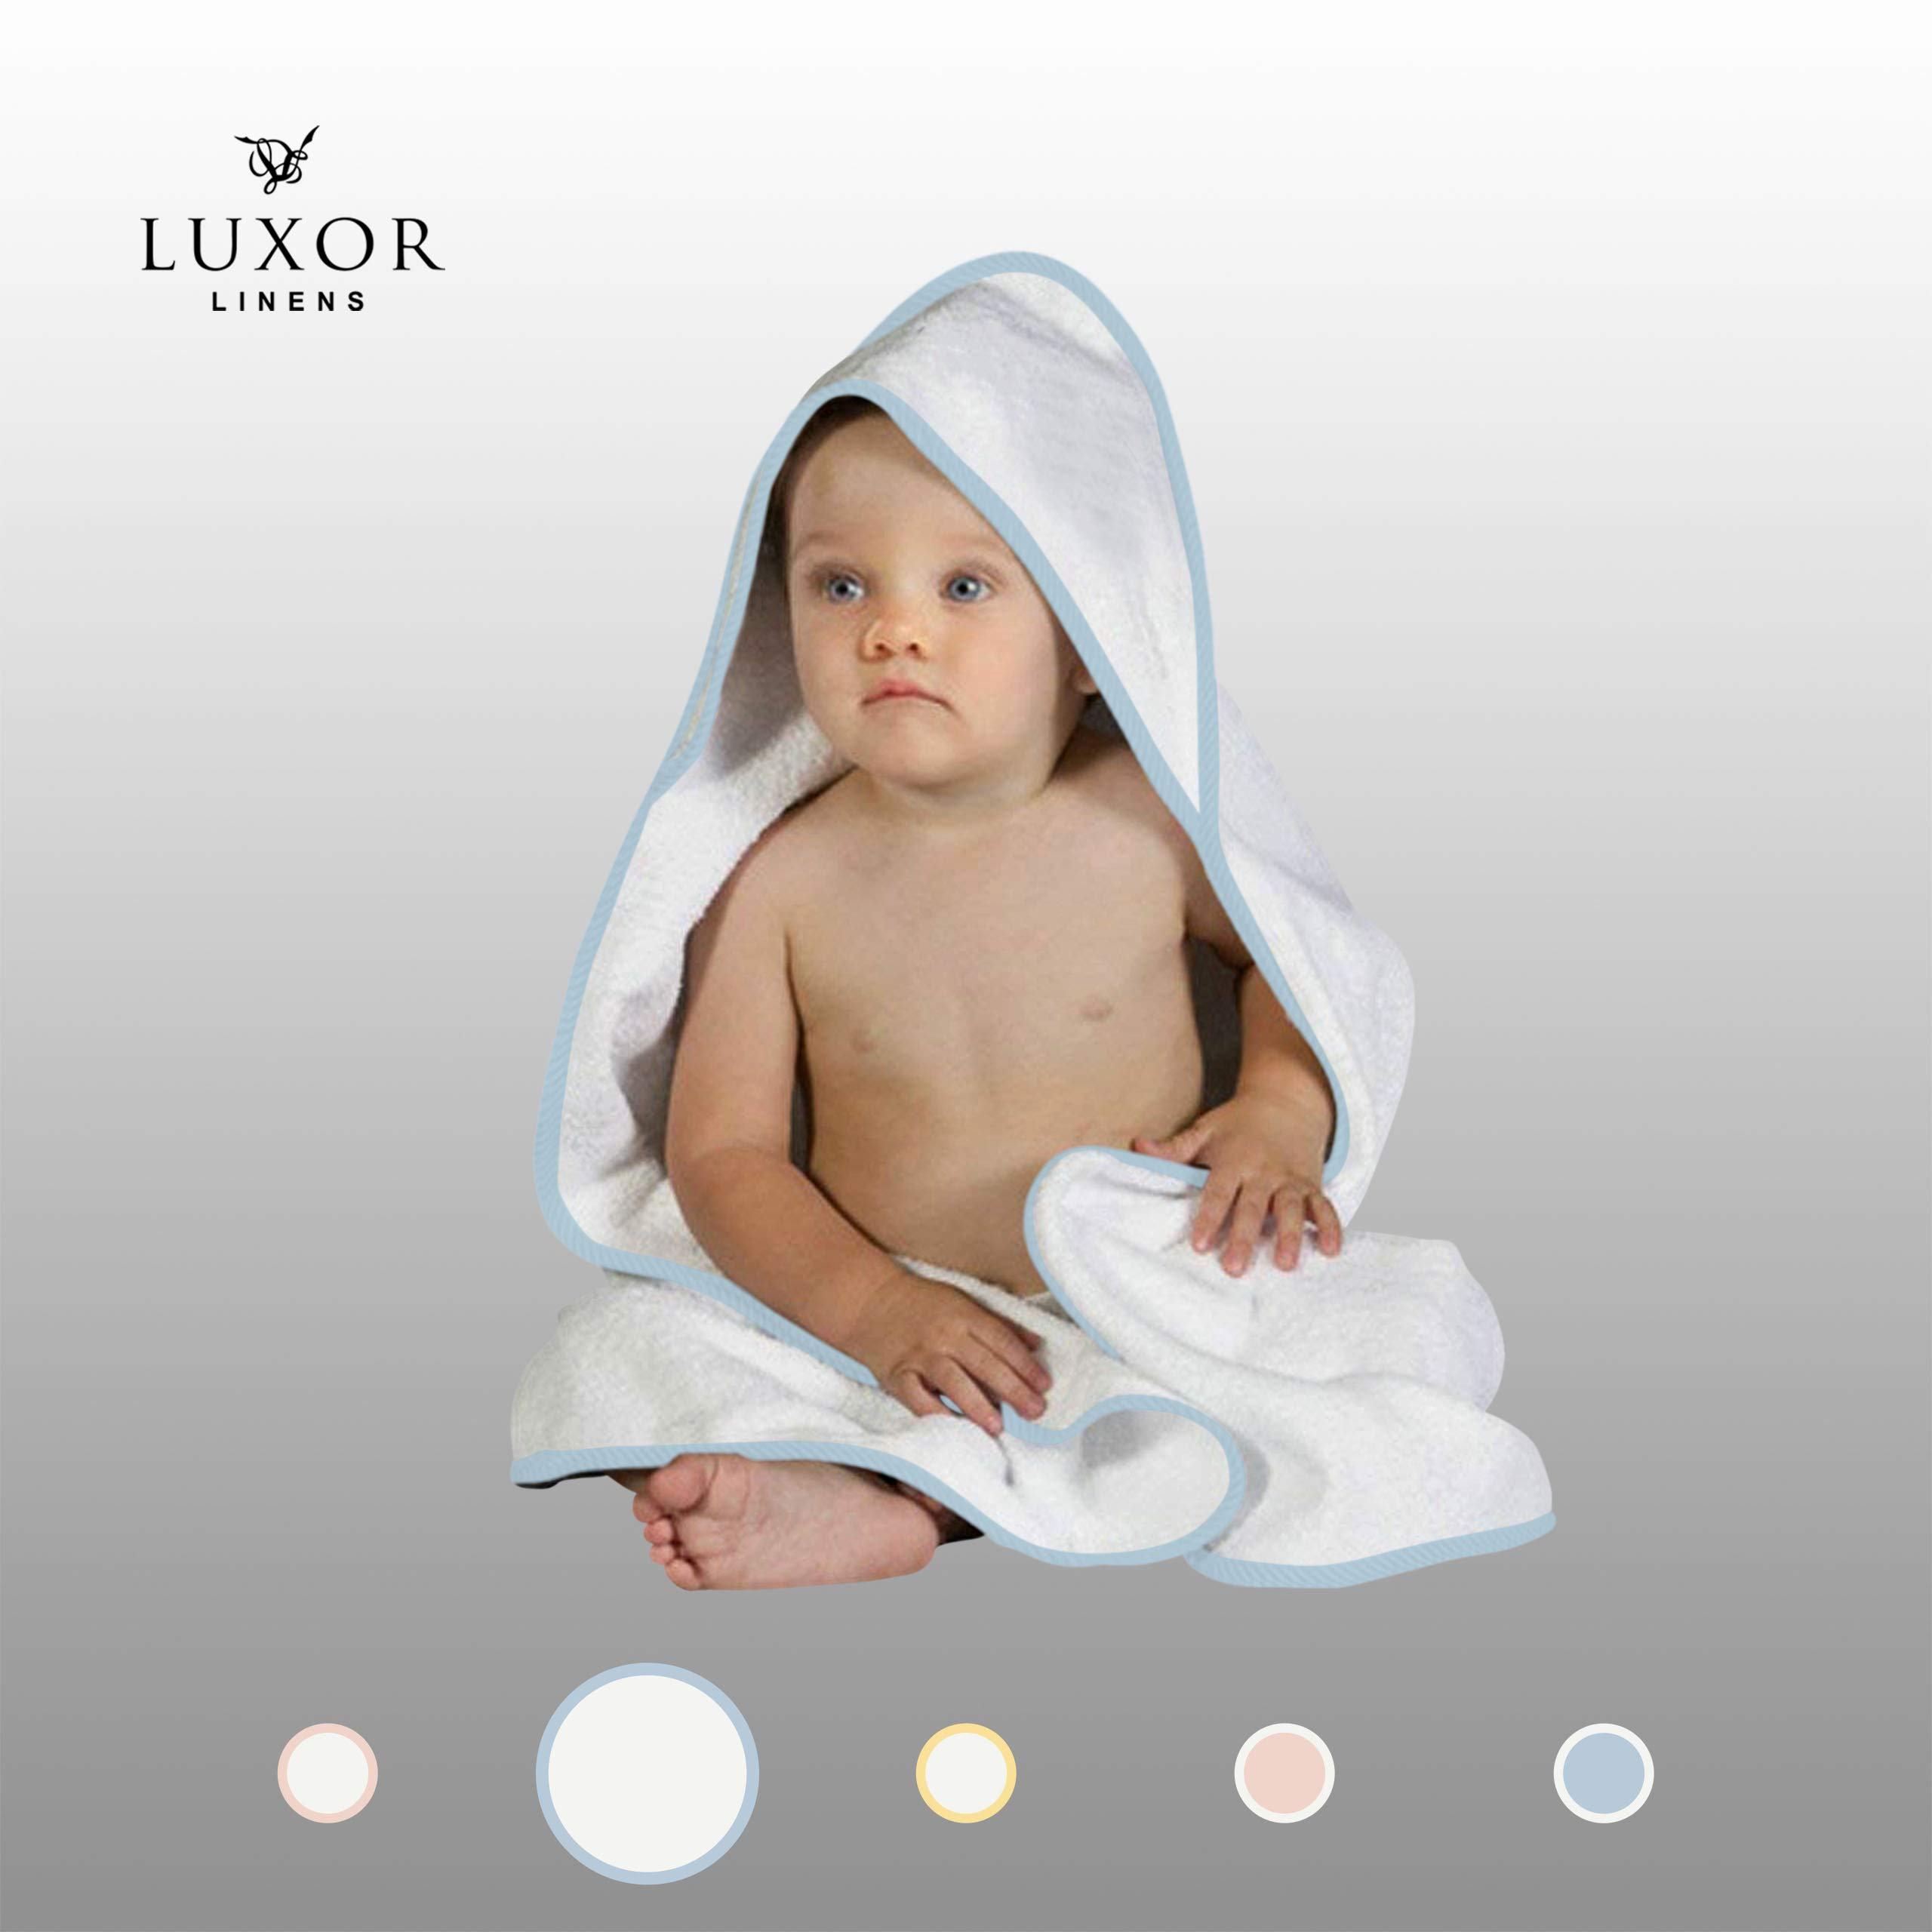 Luxor Linens 100% Super Absorbent Cotton Baby Hooded Terry Towel (White-Light Blue) Vienna Collection